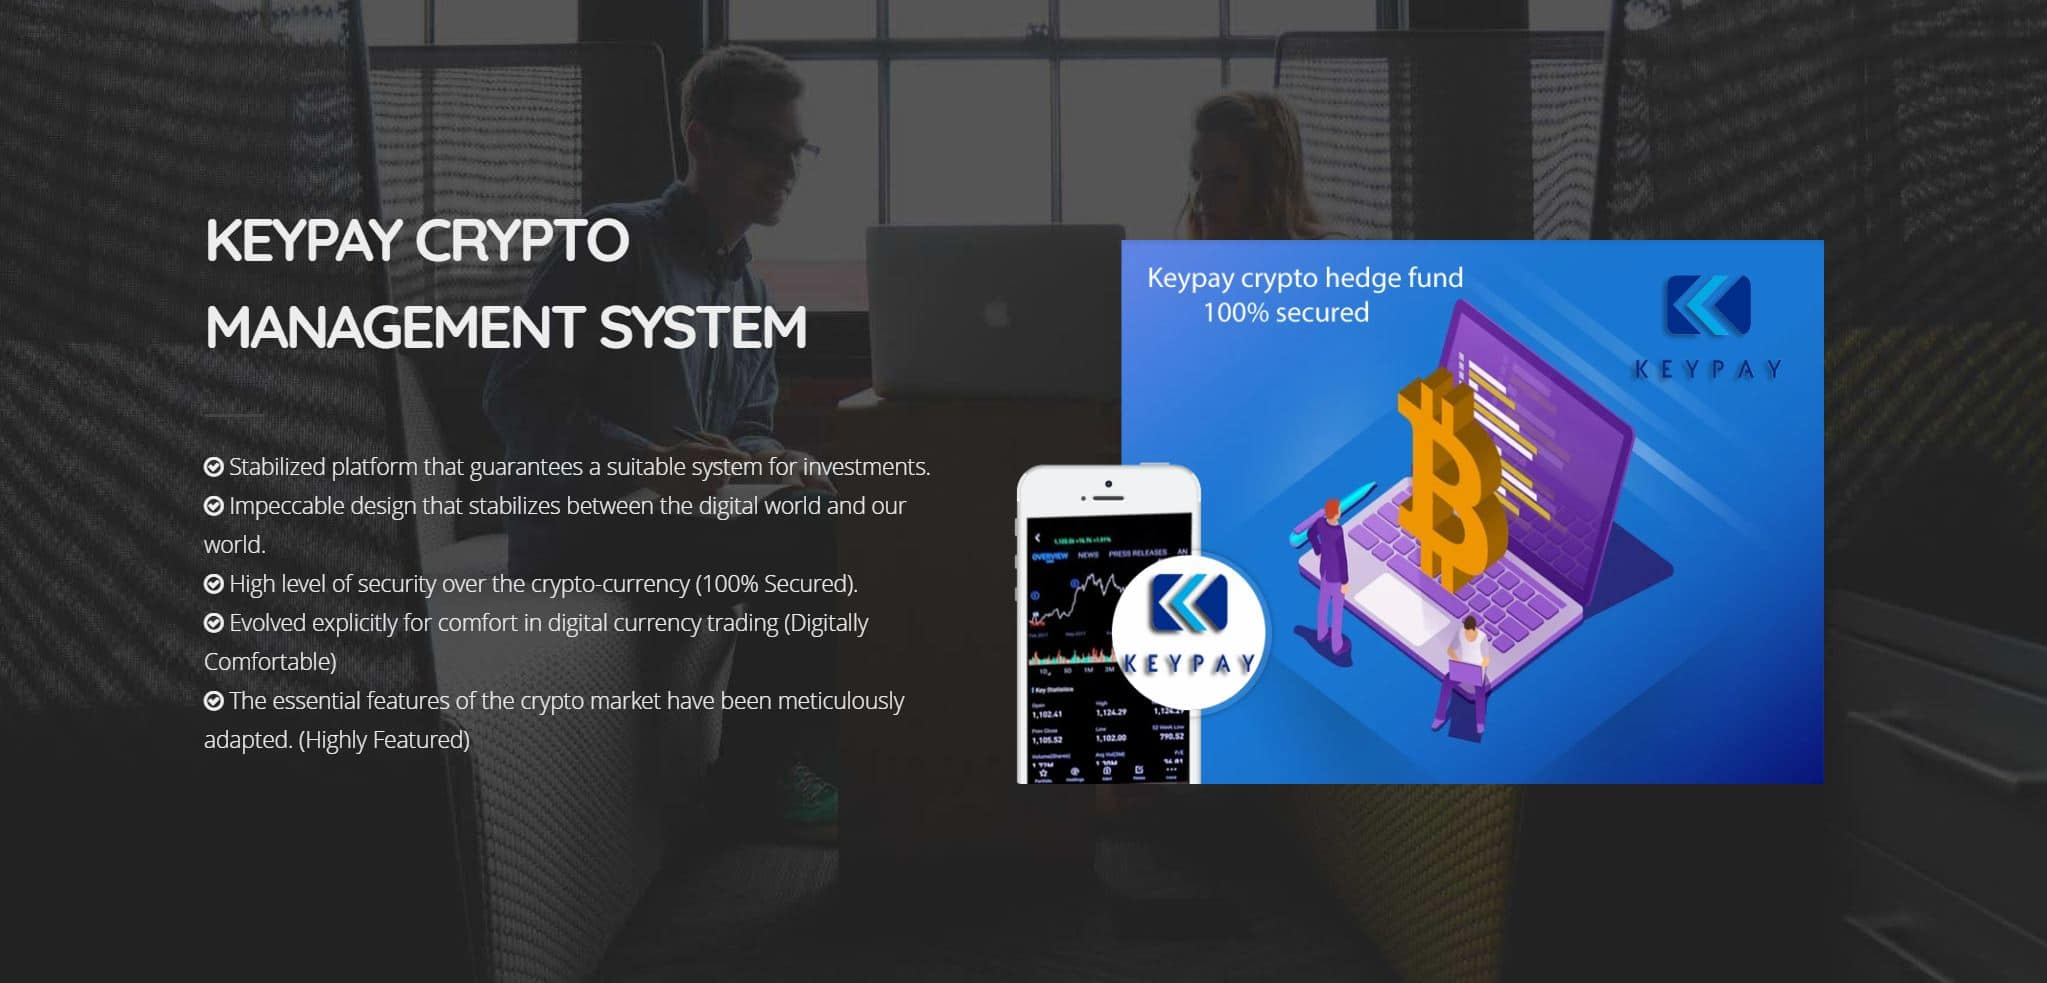 keepkey hedge funds investment